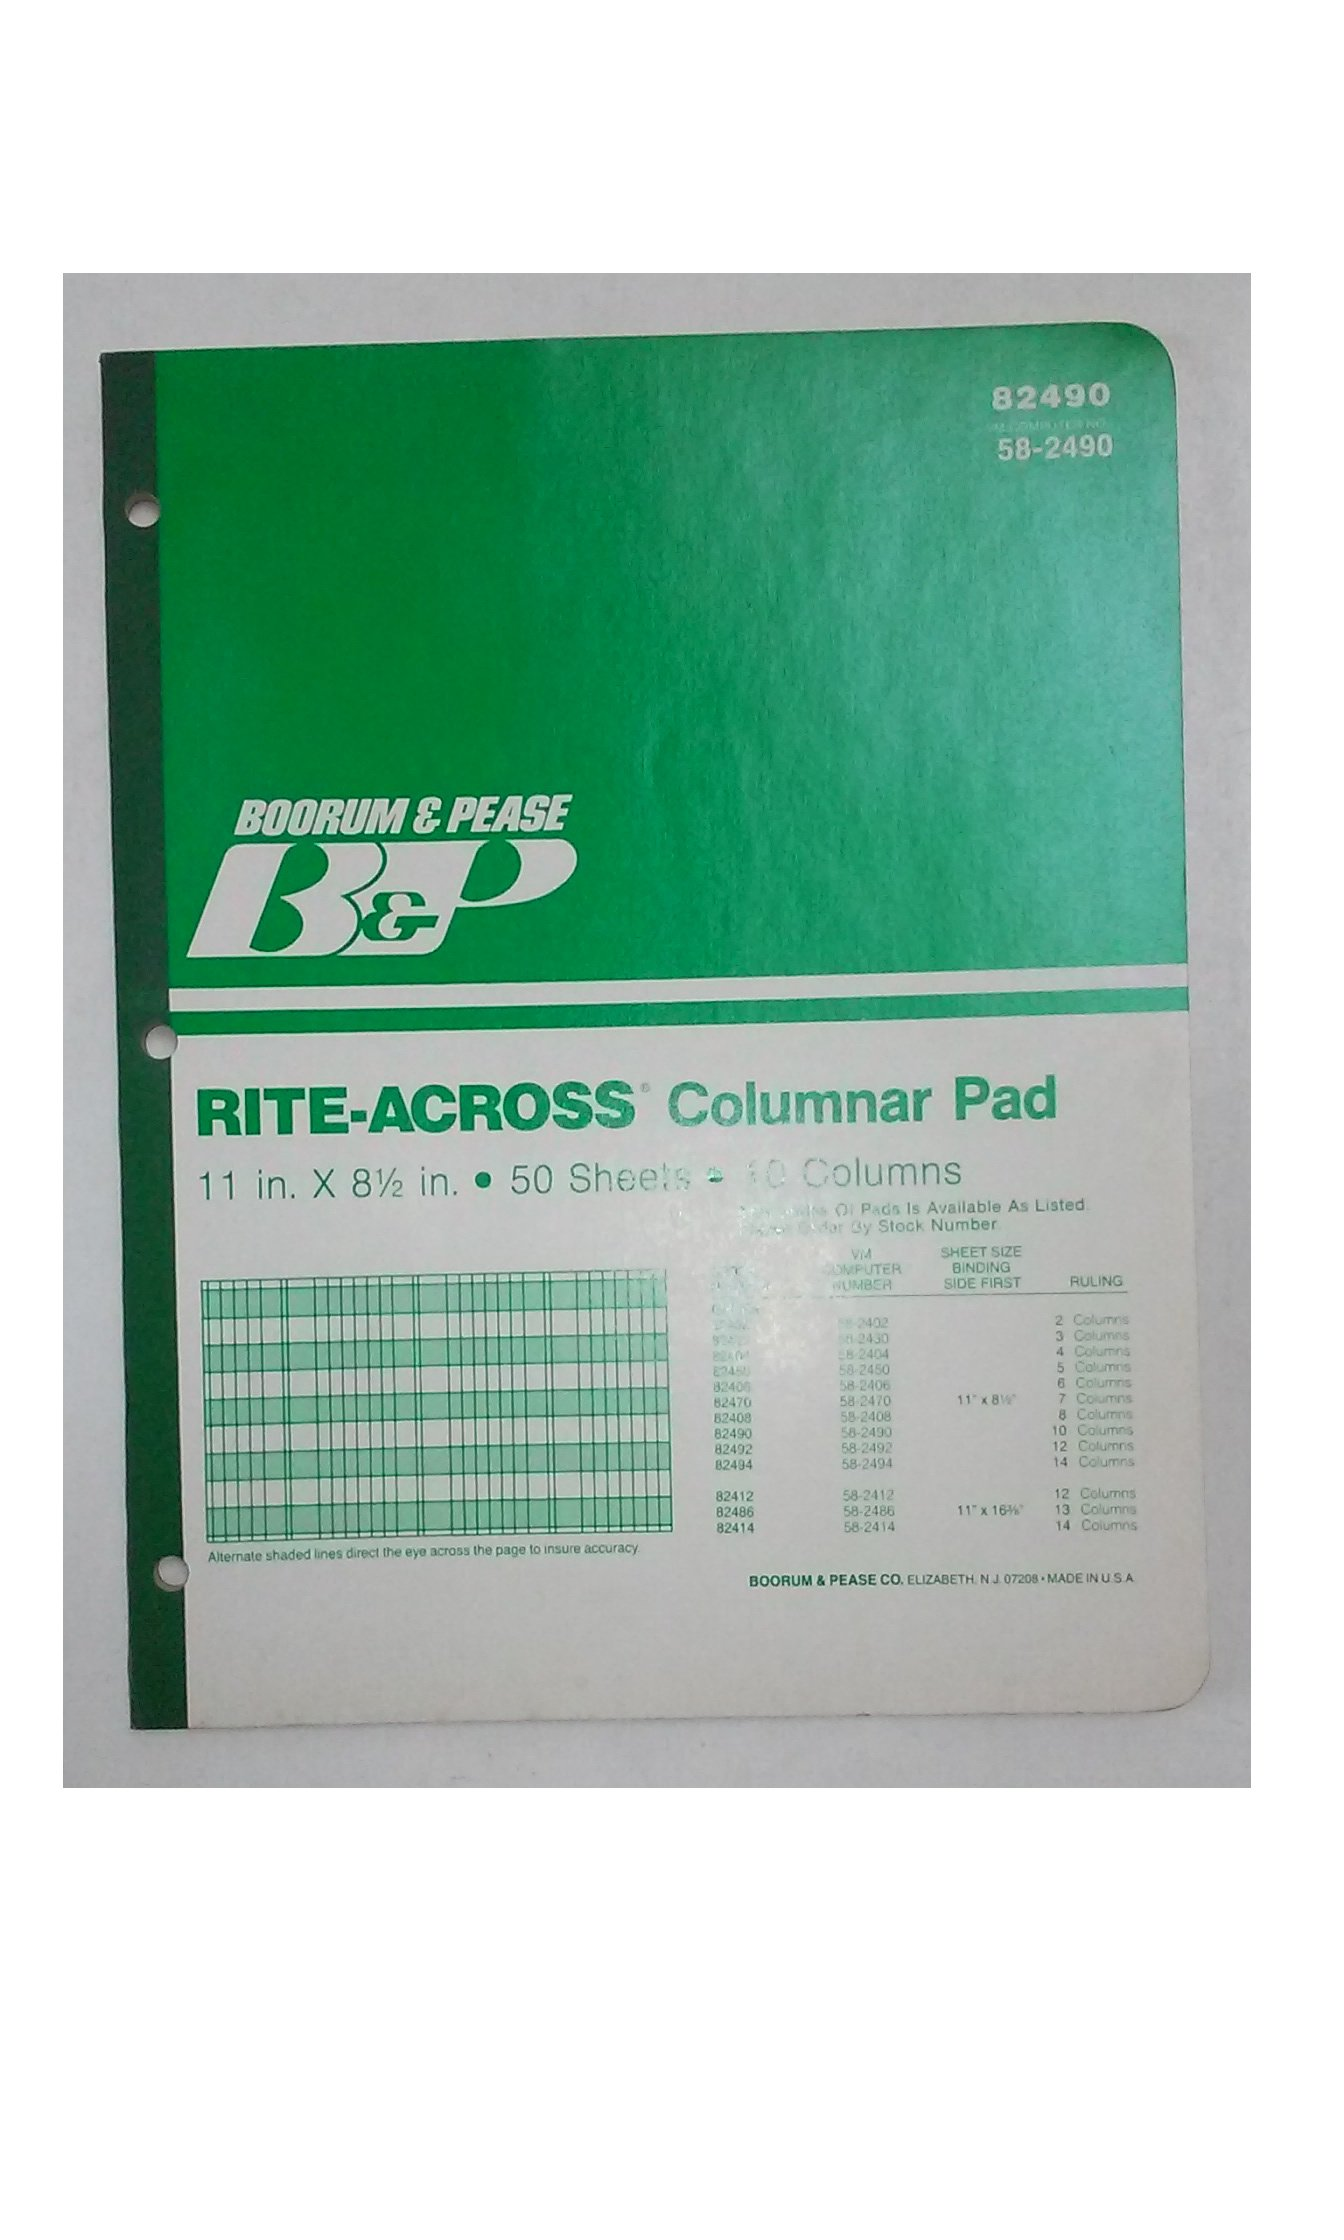 """Boorum Pease, Rite-Across(R), Columnar Pad, 11"""" x 8 1/2"""", 50 Sheets, 10 Columns, 82490, Can Substitute With Boorum Pease 8810 1/2 or National Brand 45-210"""